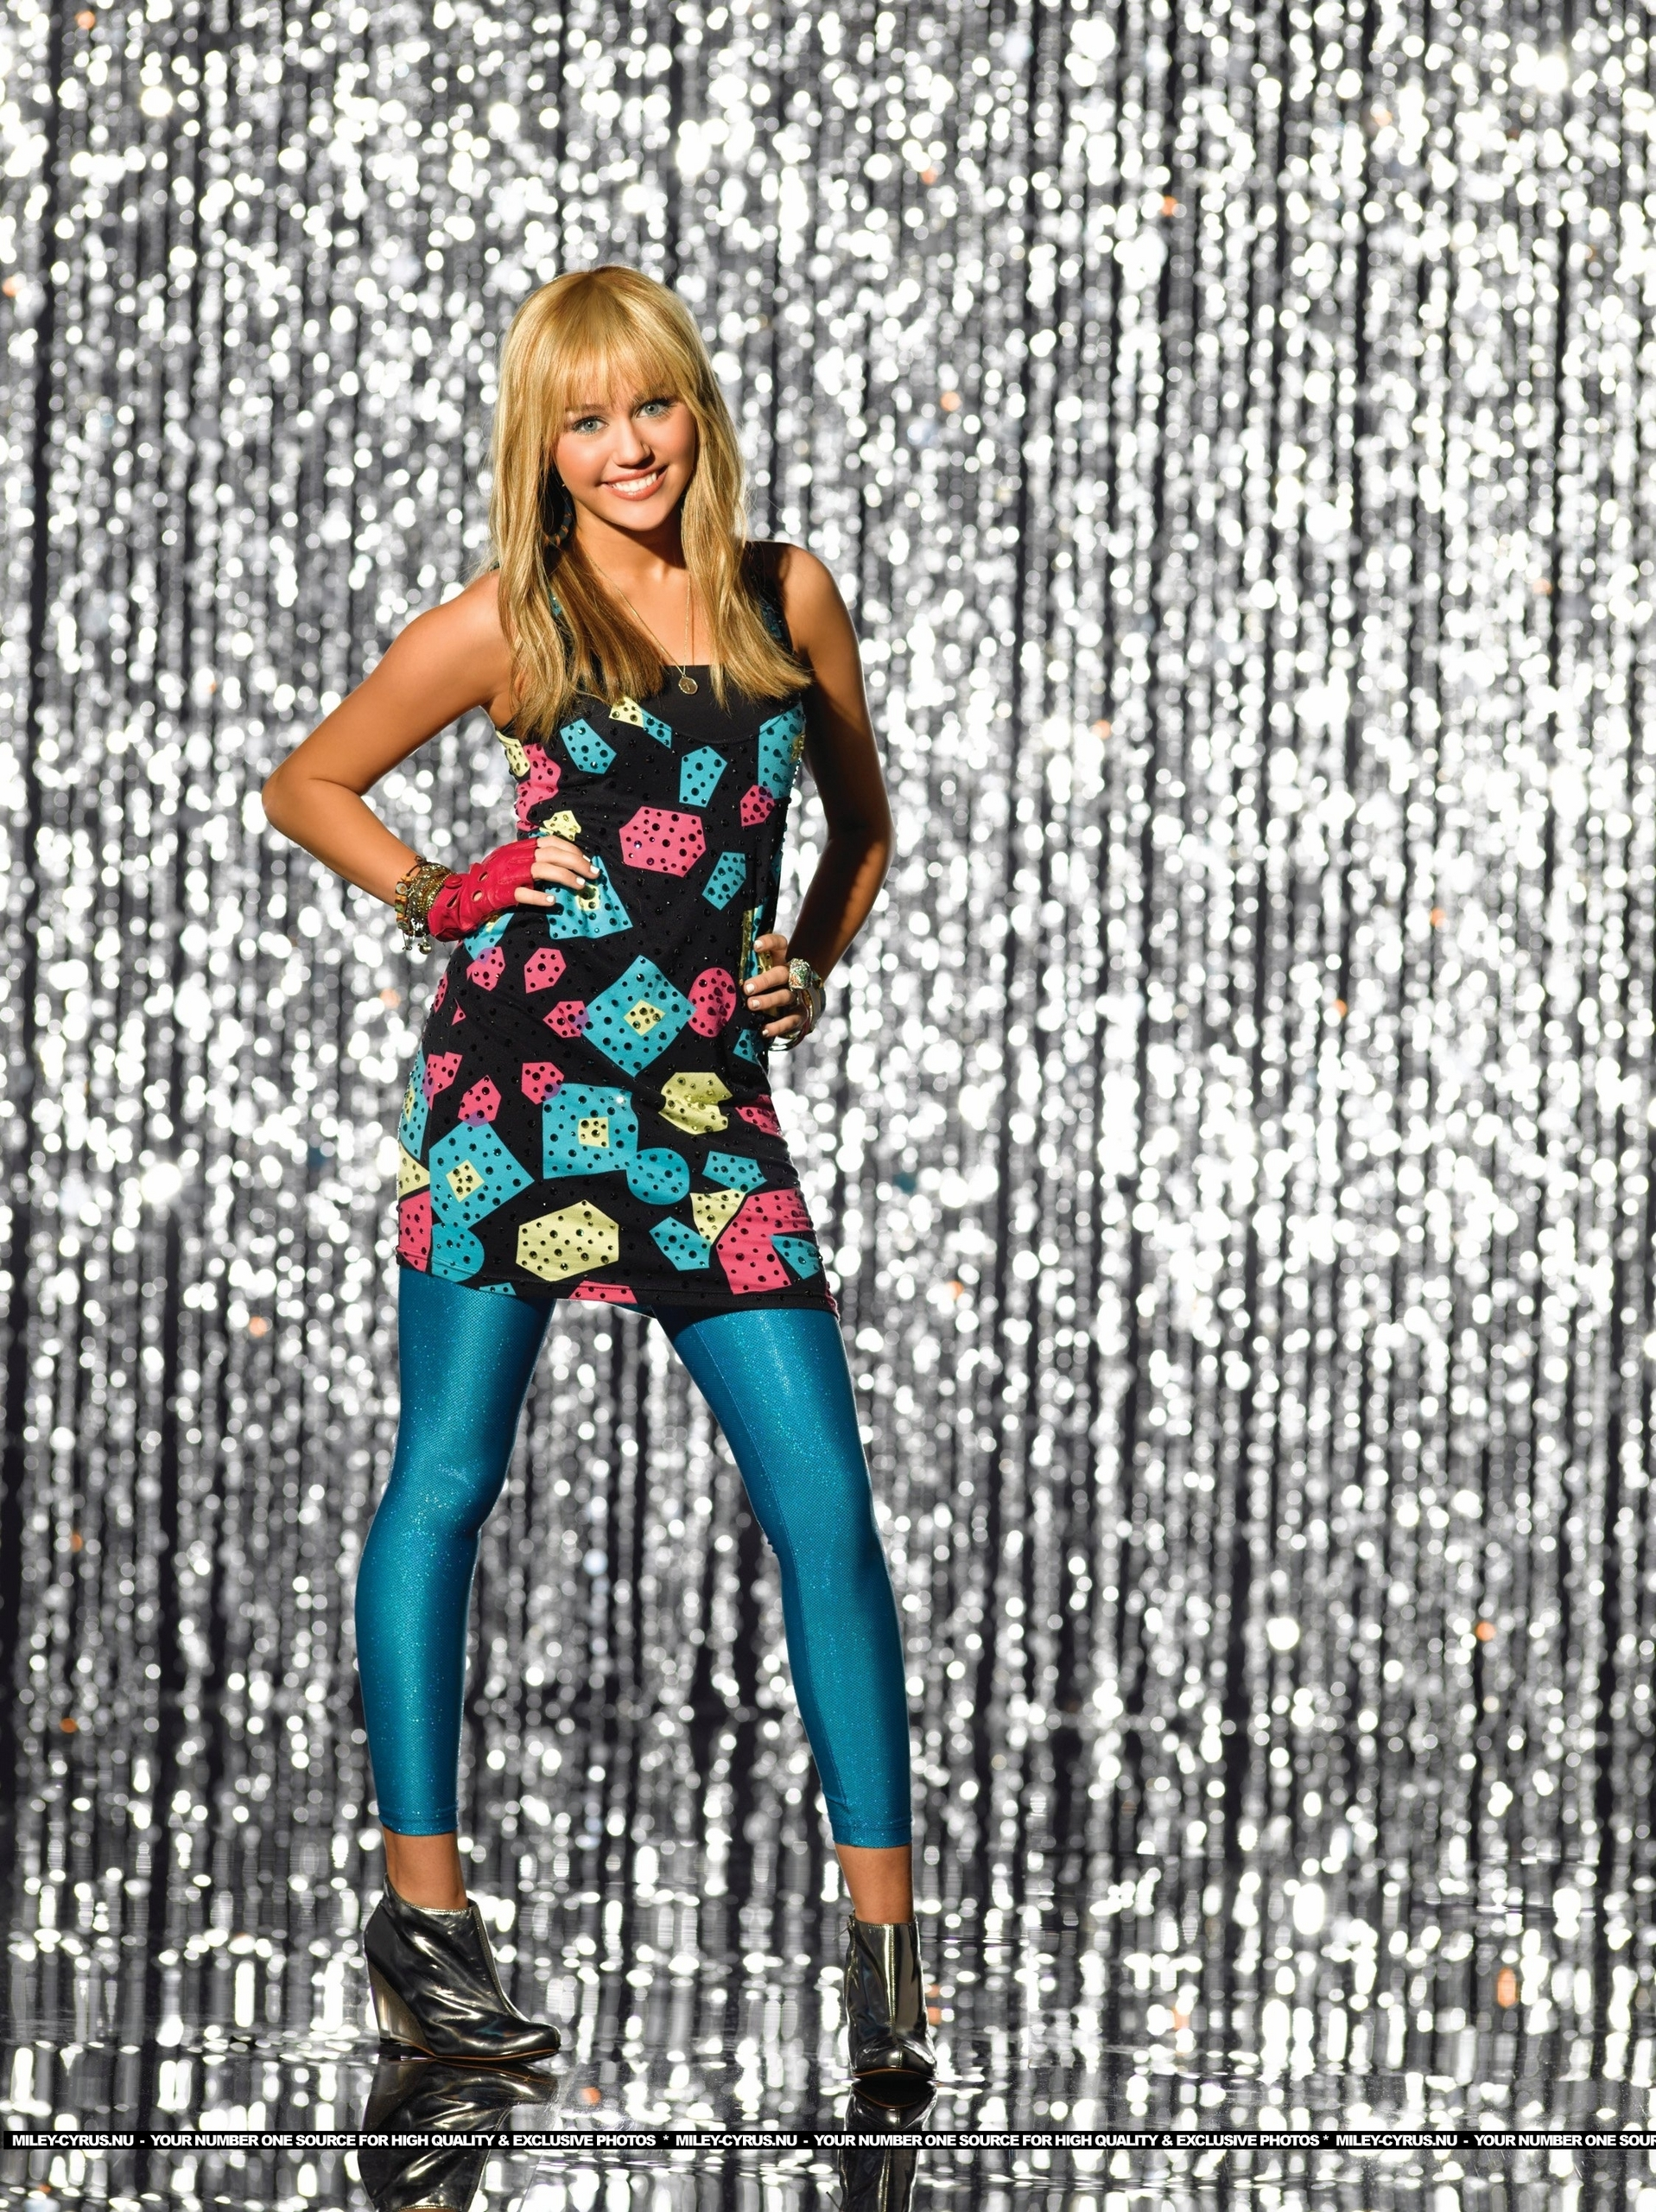 cool images hannah montana - photo #10